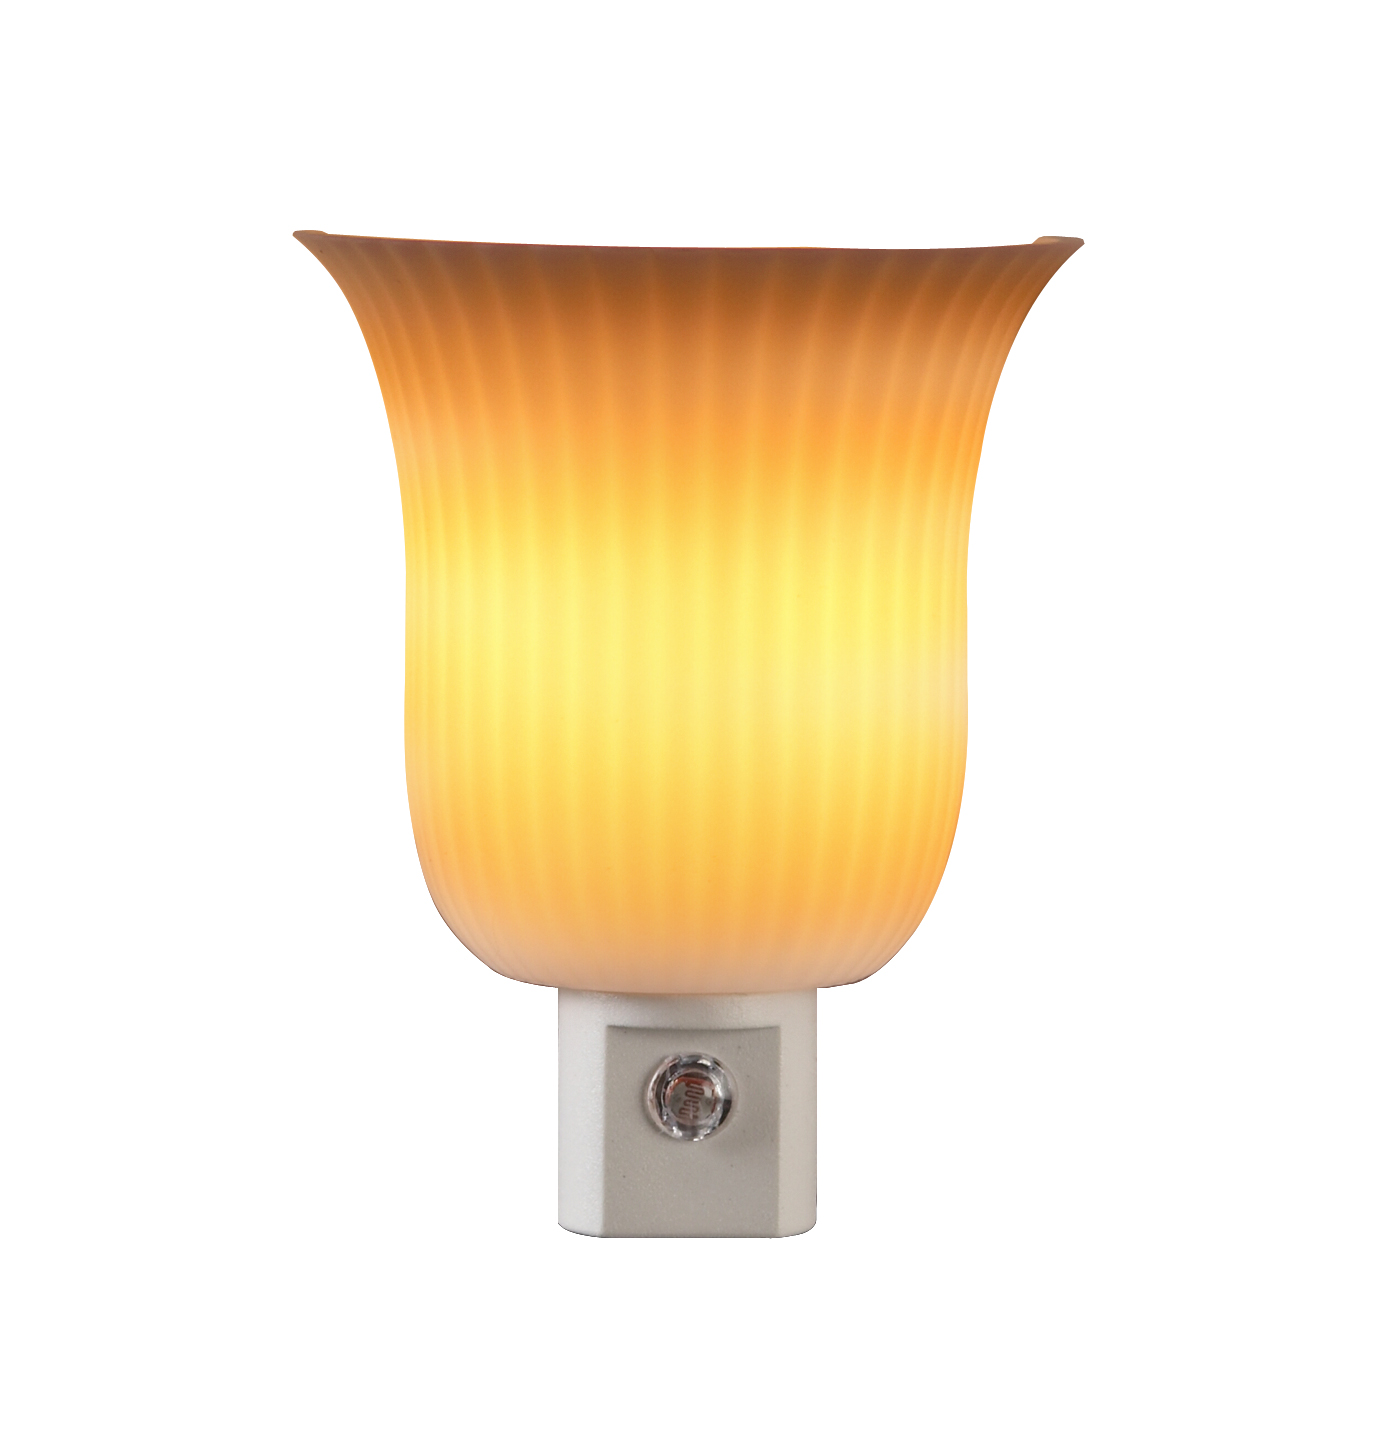 AmerTac 71142 Pleated Sconce Night Light by Amertac